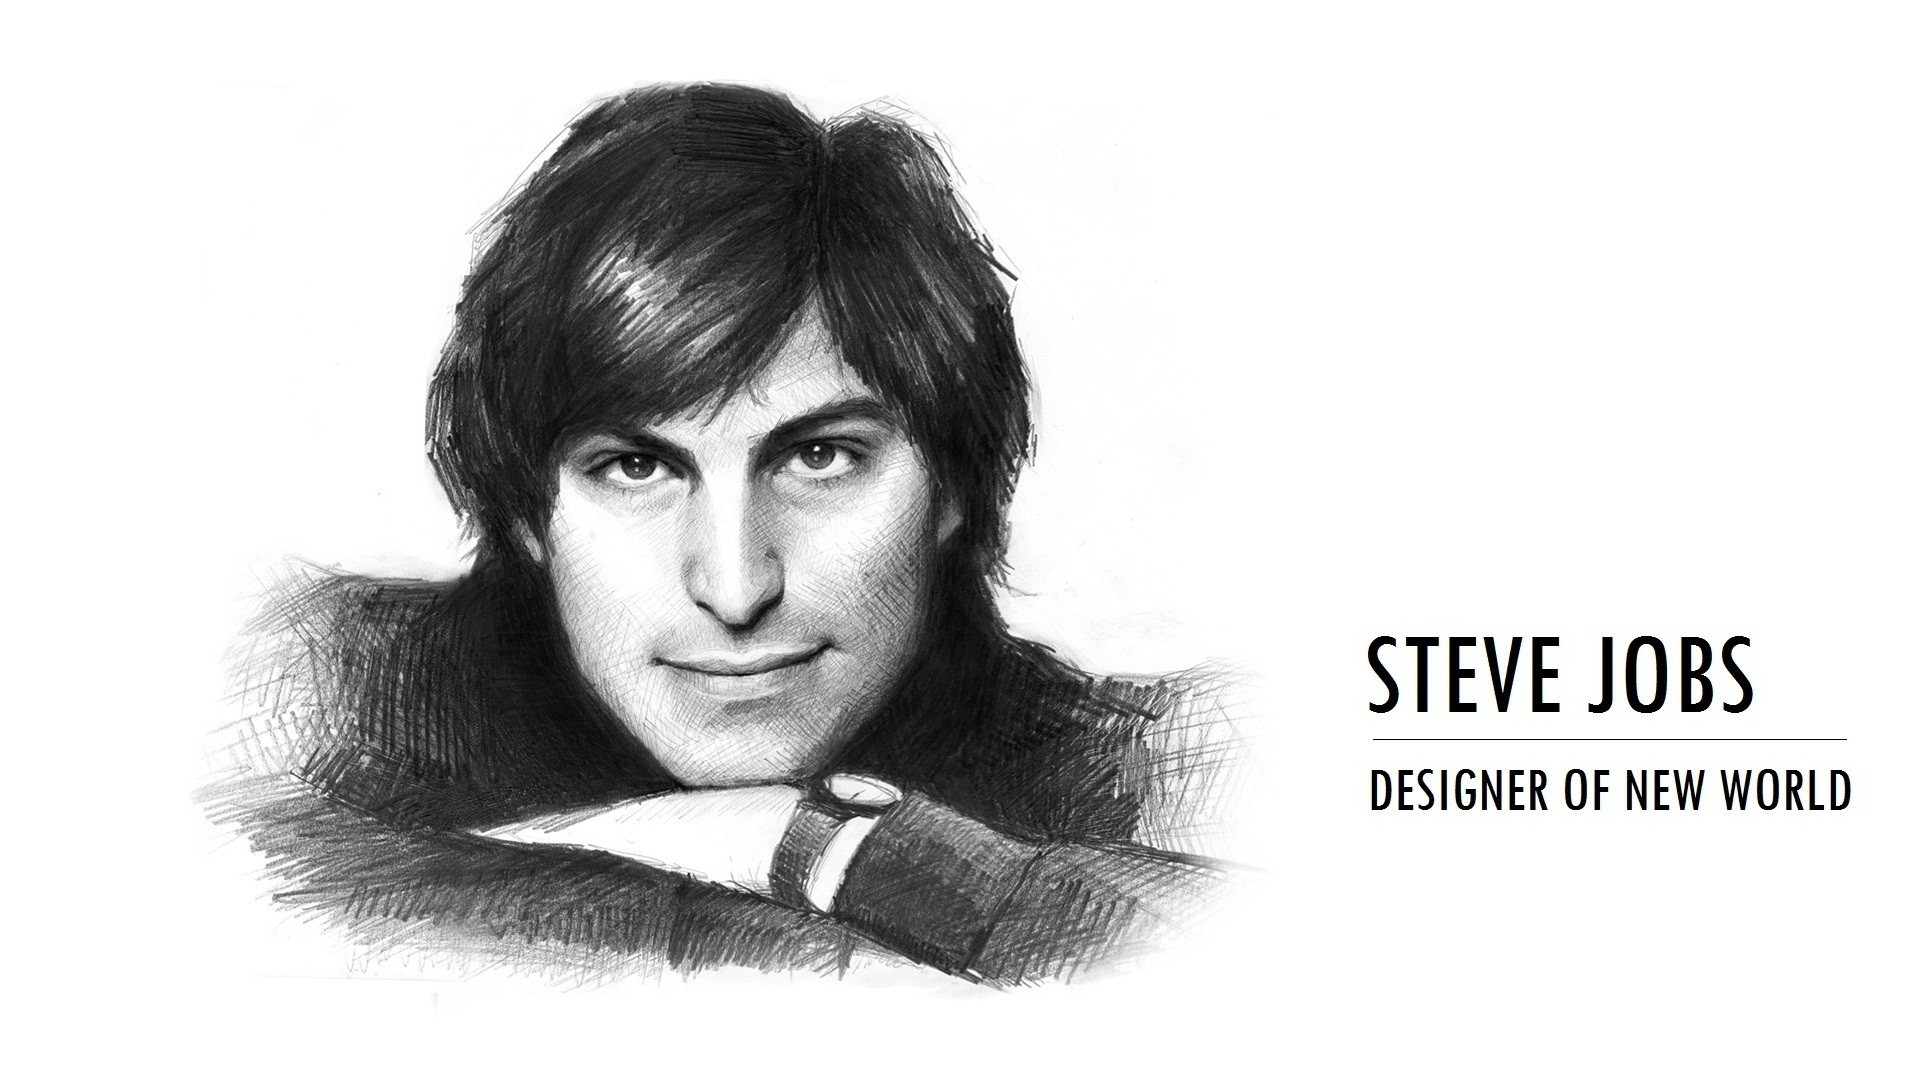 Steve Jobs Quotes Your Time Is Limited Wallpaper Sankets Knowlege Palace Bill Gates Quotes